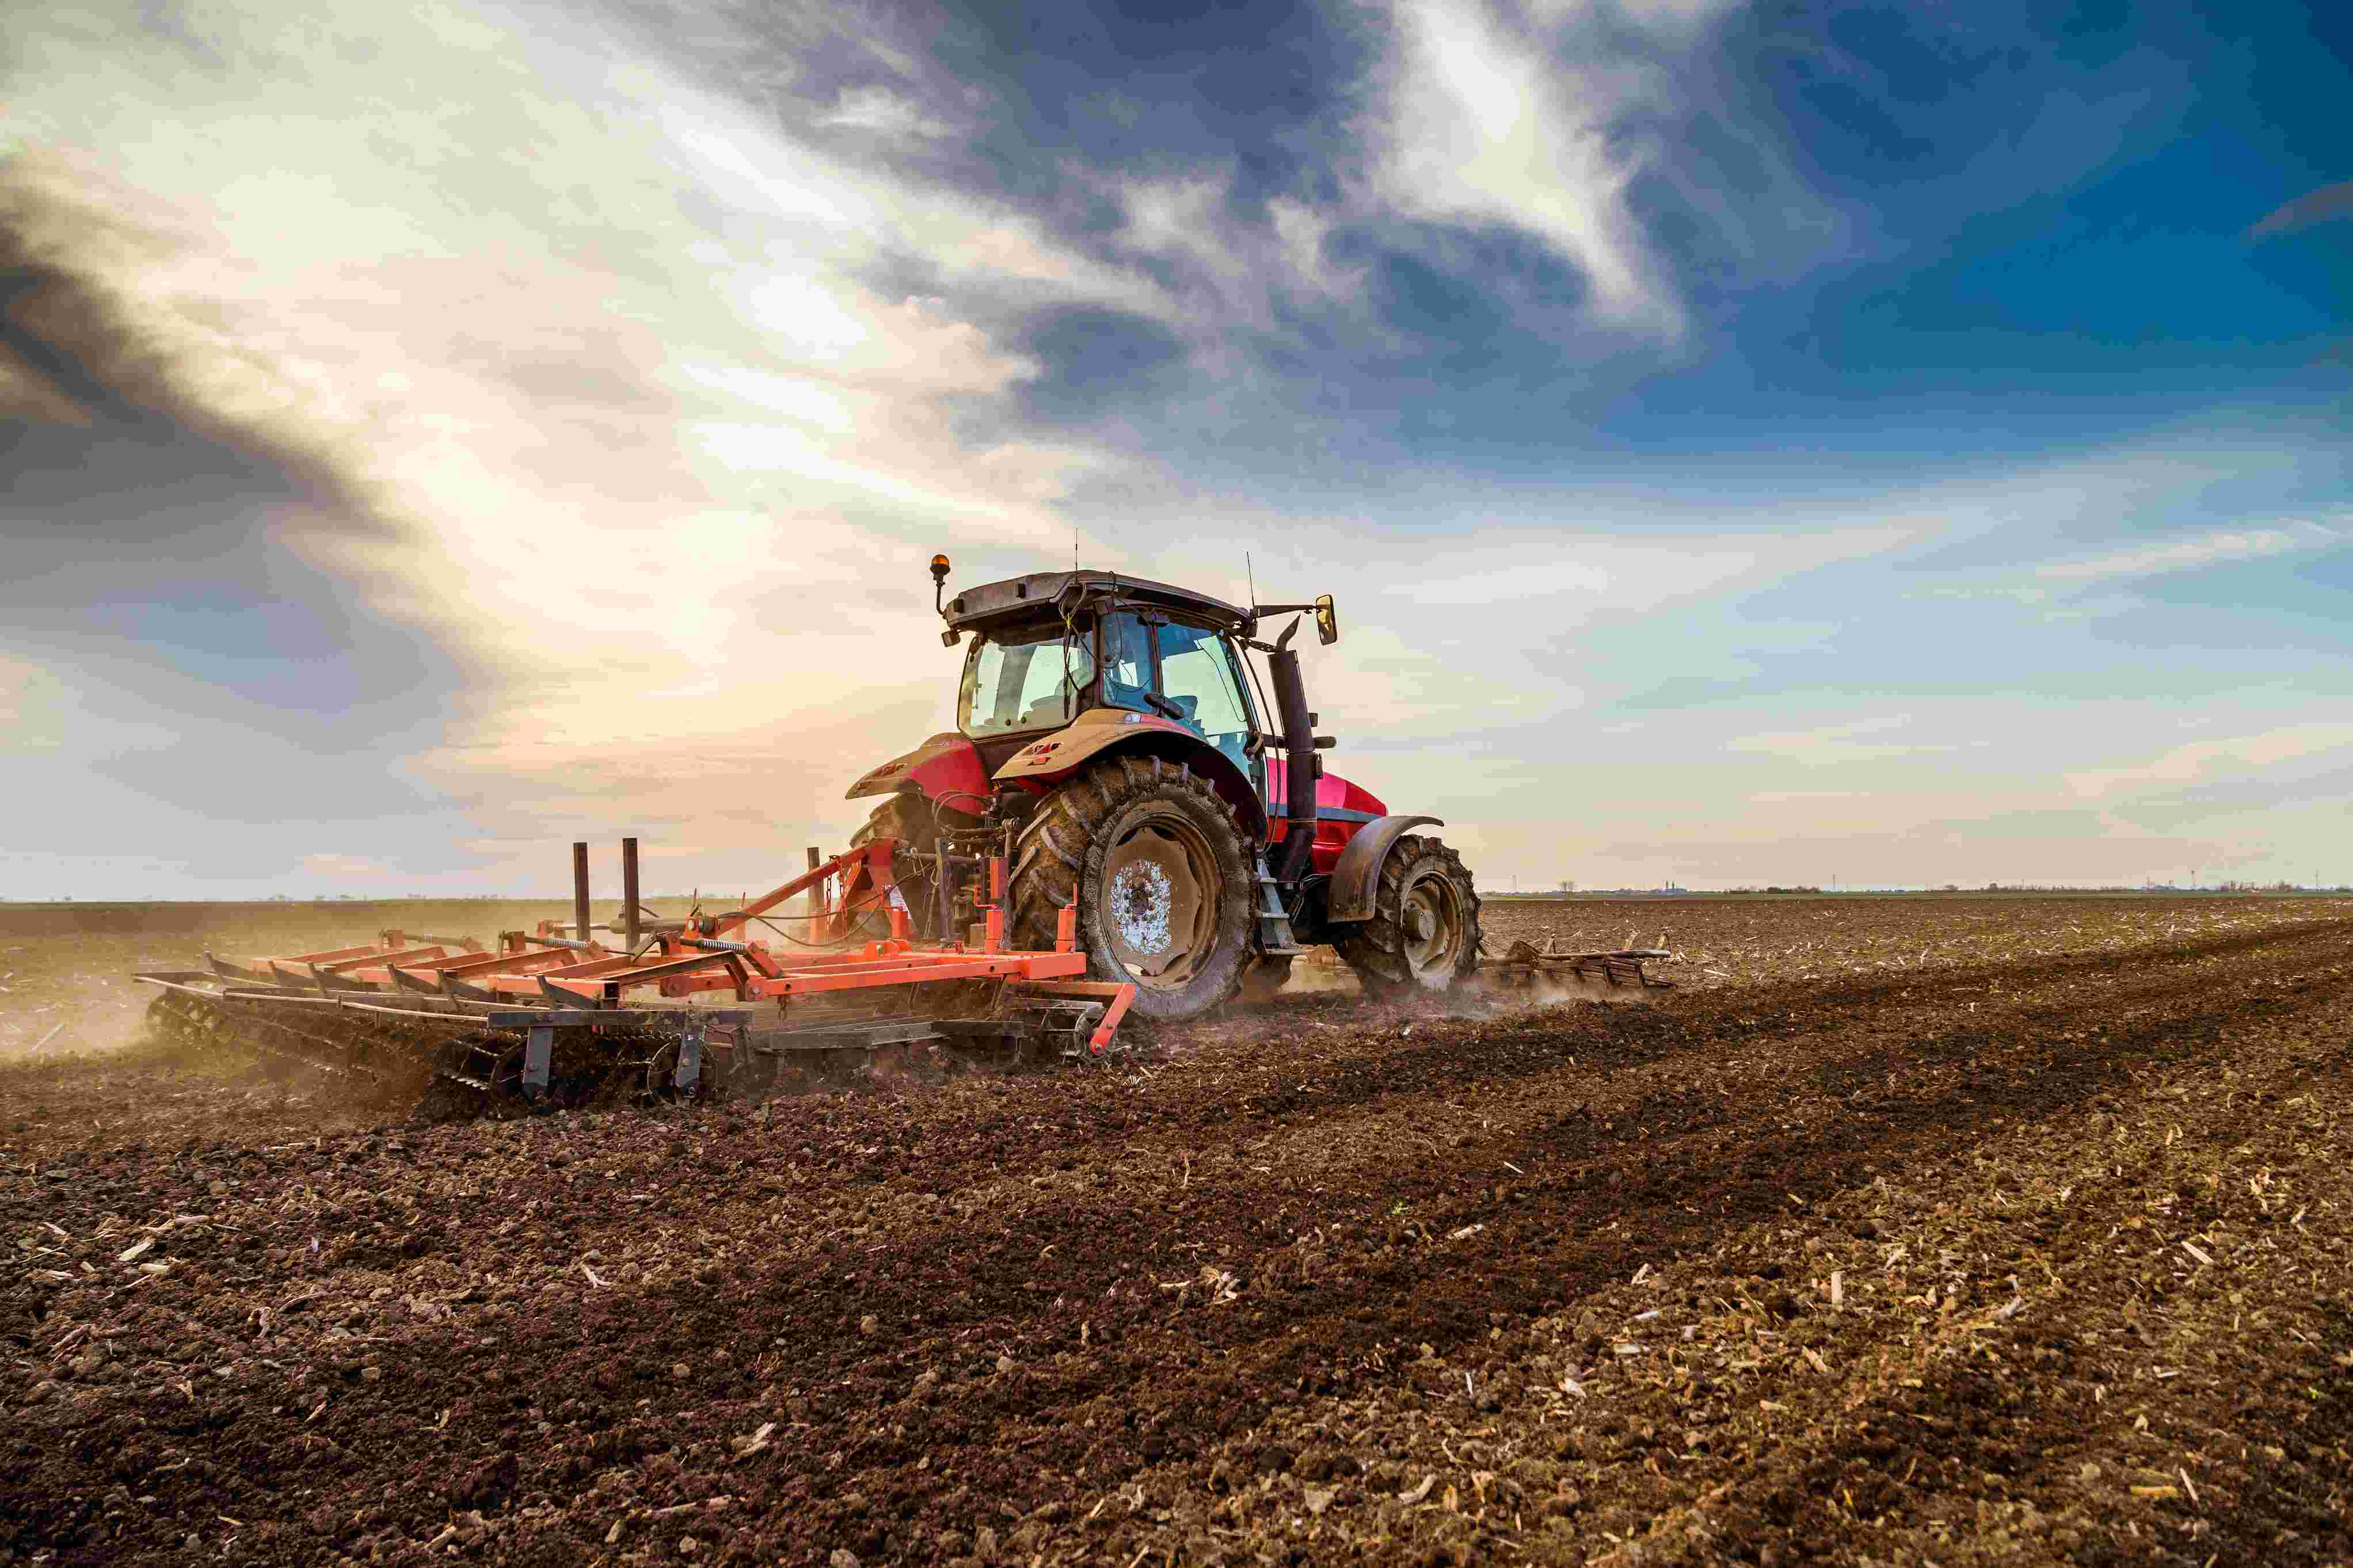 A tractor ploughs a field